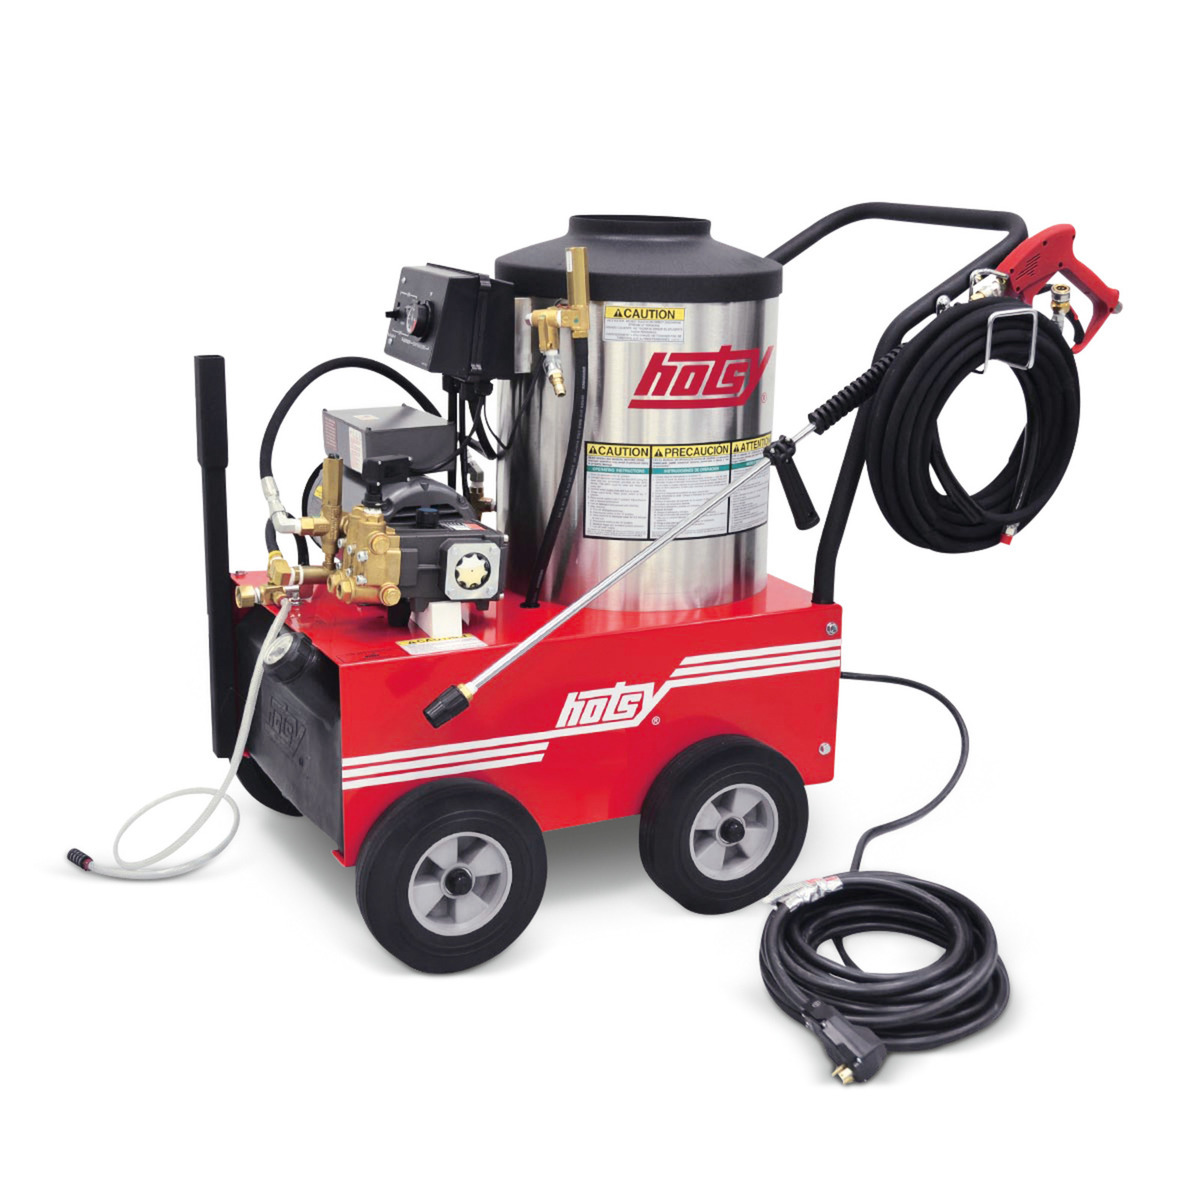 555SS Hotsy Pressure Washer